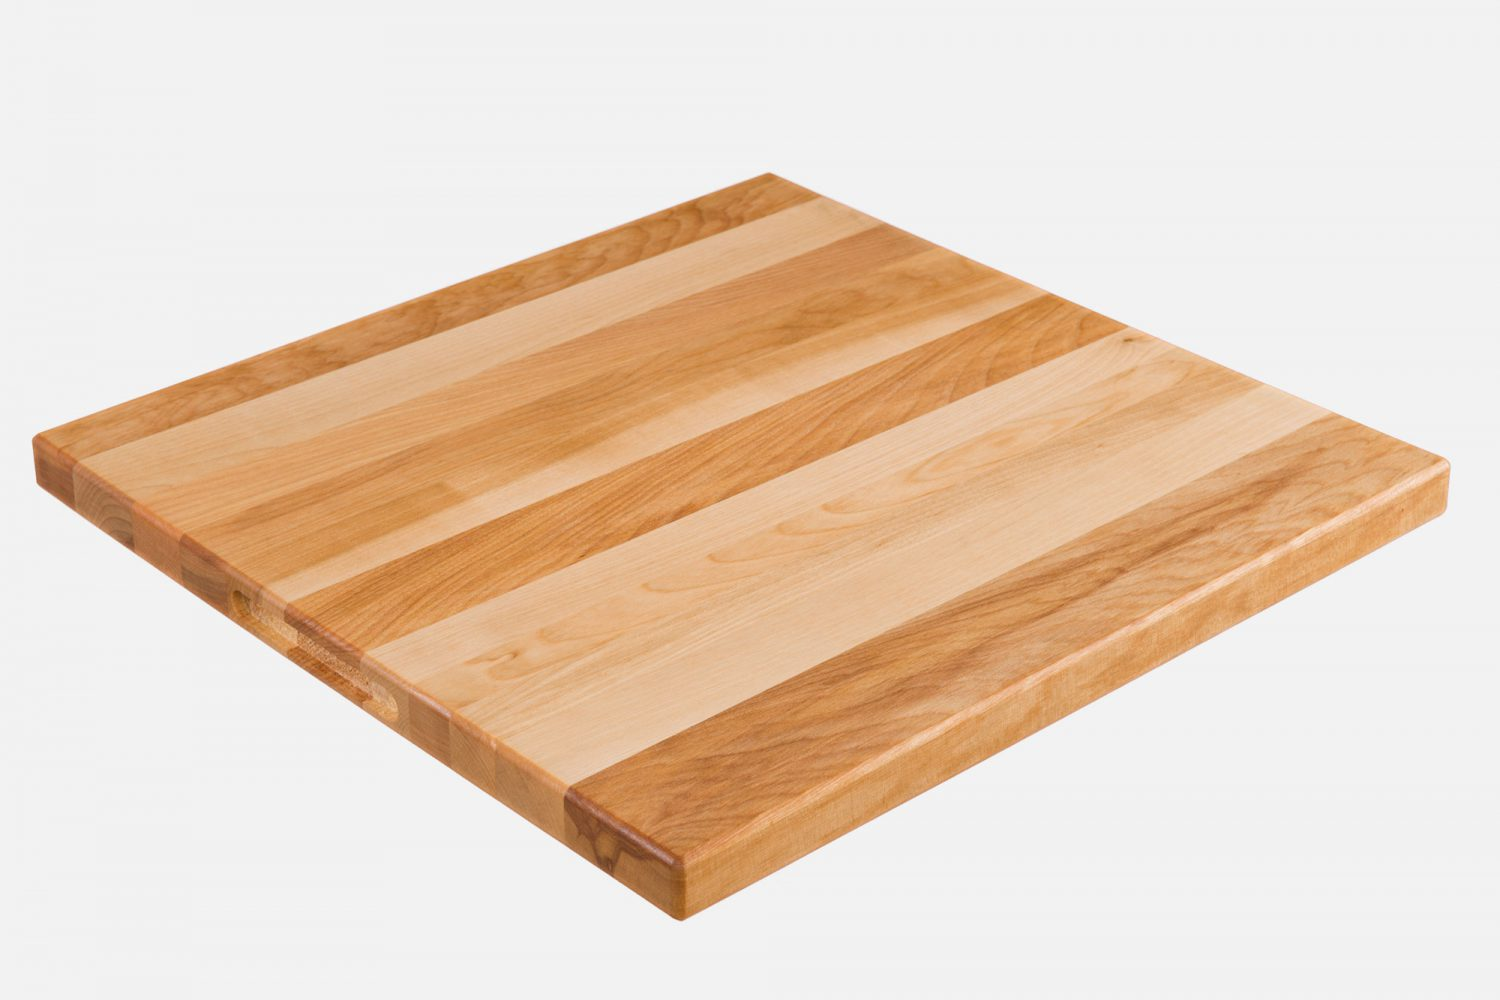 Butcher block with end grain